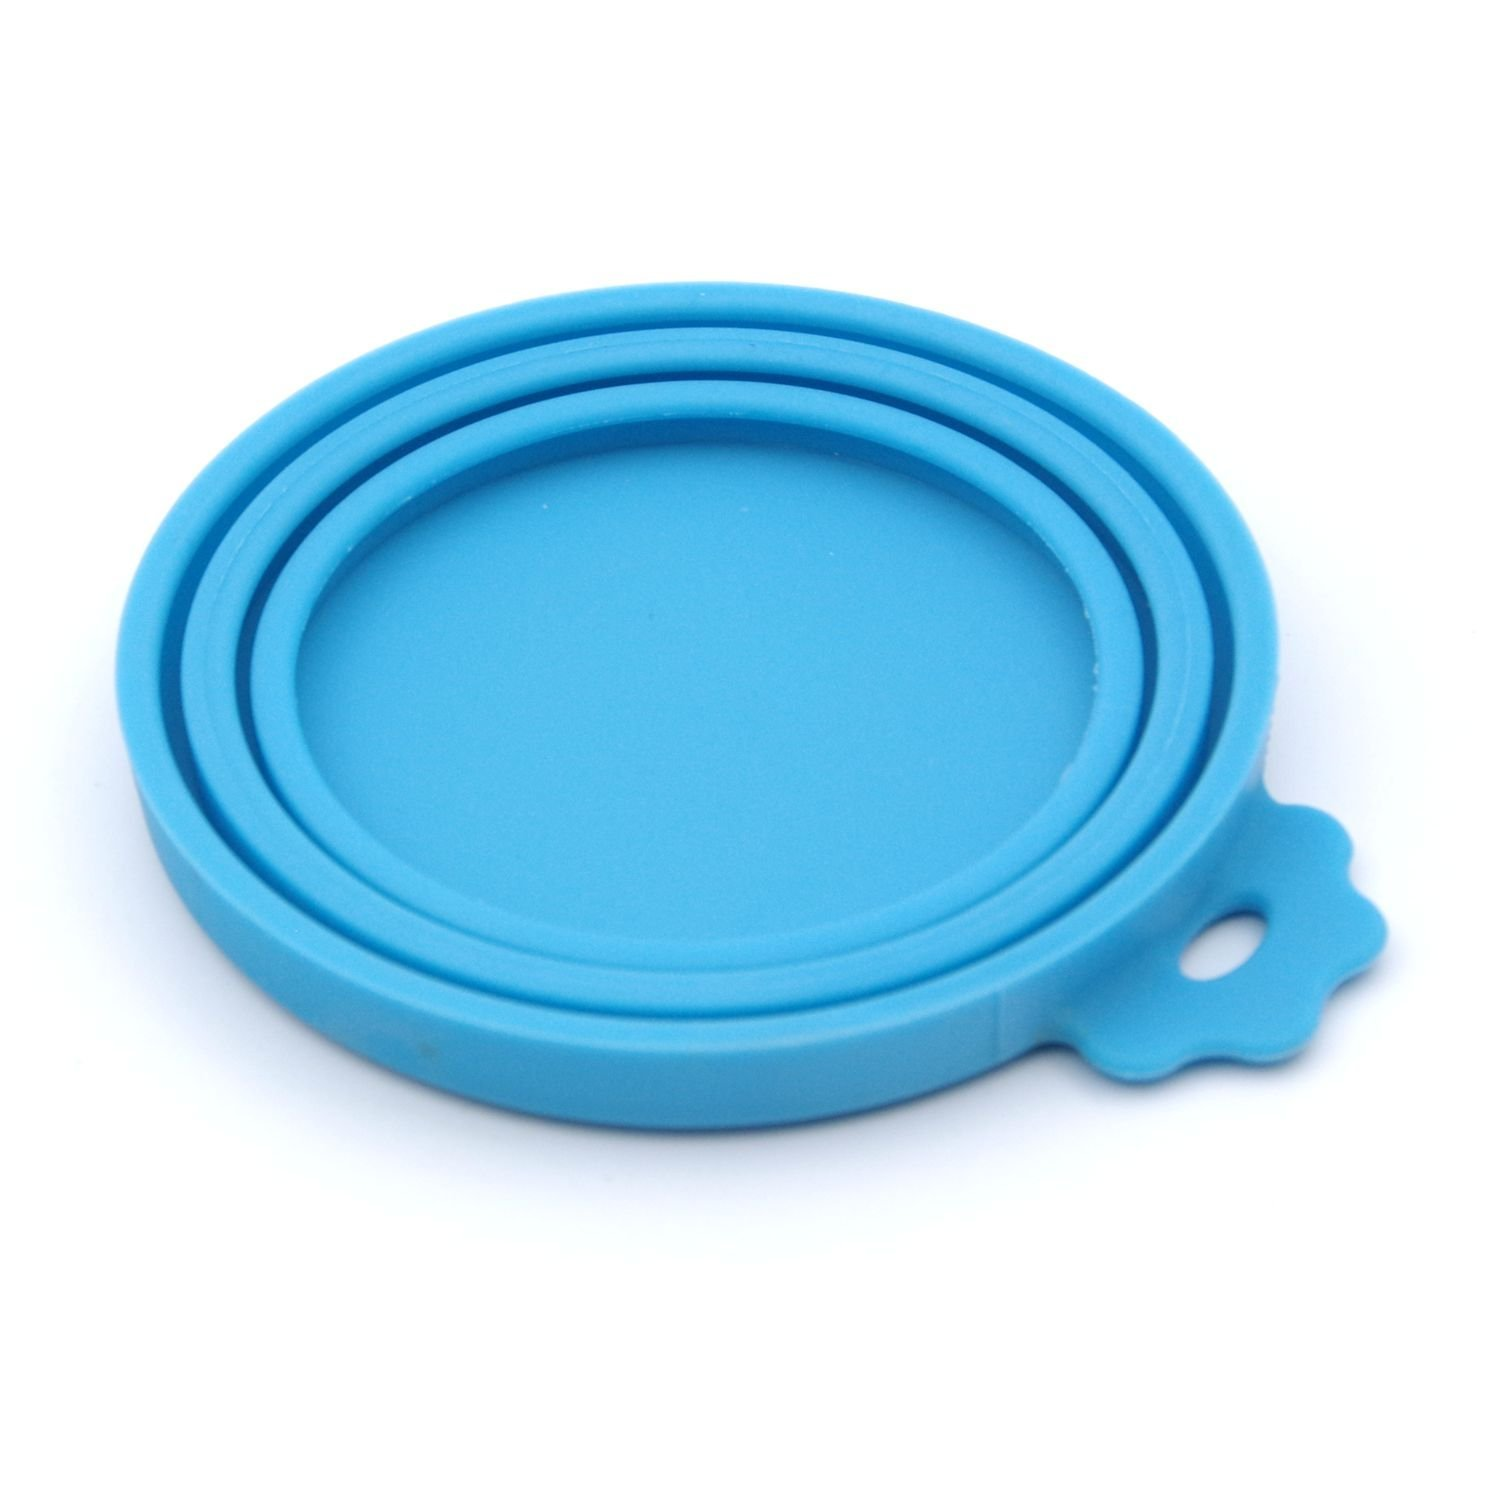 Pet-Food-Can-Lid-Covers-Universal-BPA-Free-Silicone-Can-Tops-Cover-For-Dog-Cat thumbnail 17